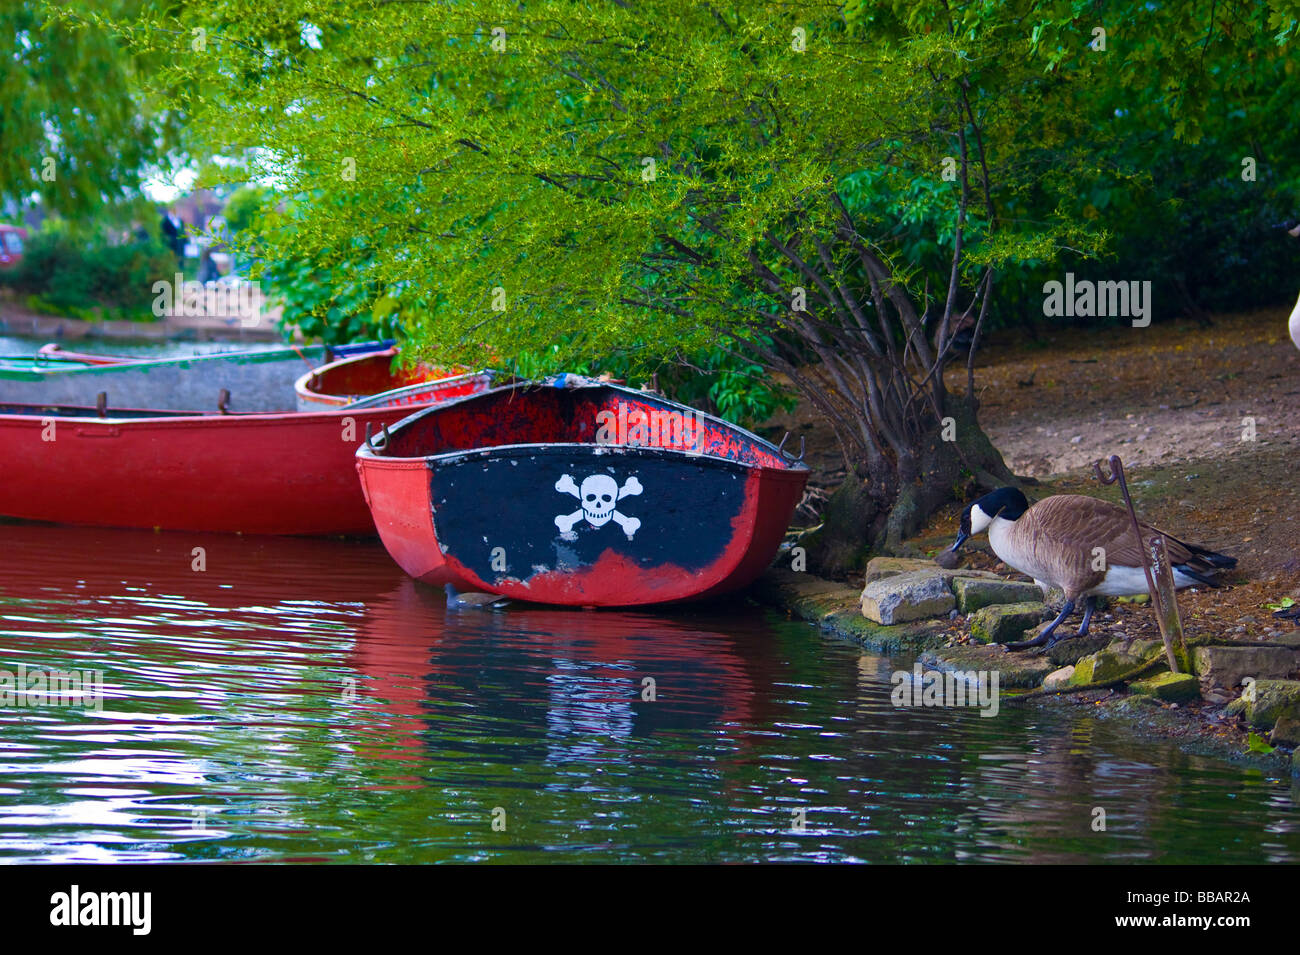 Rowing boat in Finsbury Park boating Lake.Sporting a smiley Jolly Roger design on its stern. - Stock Image